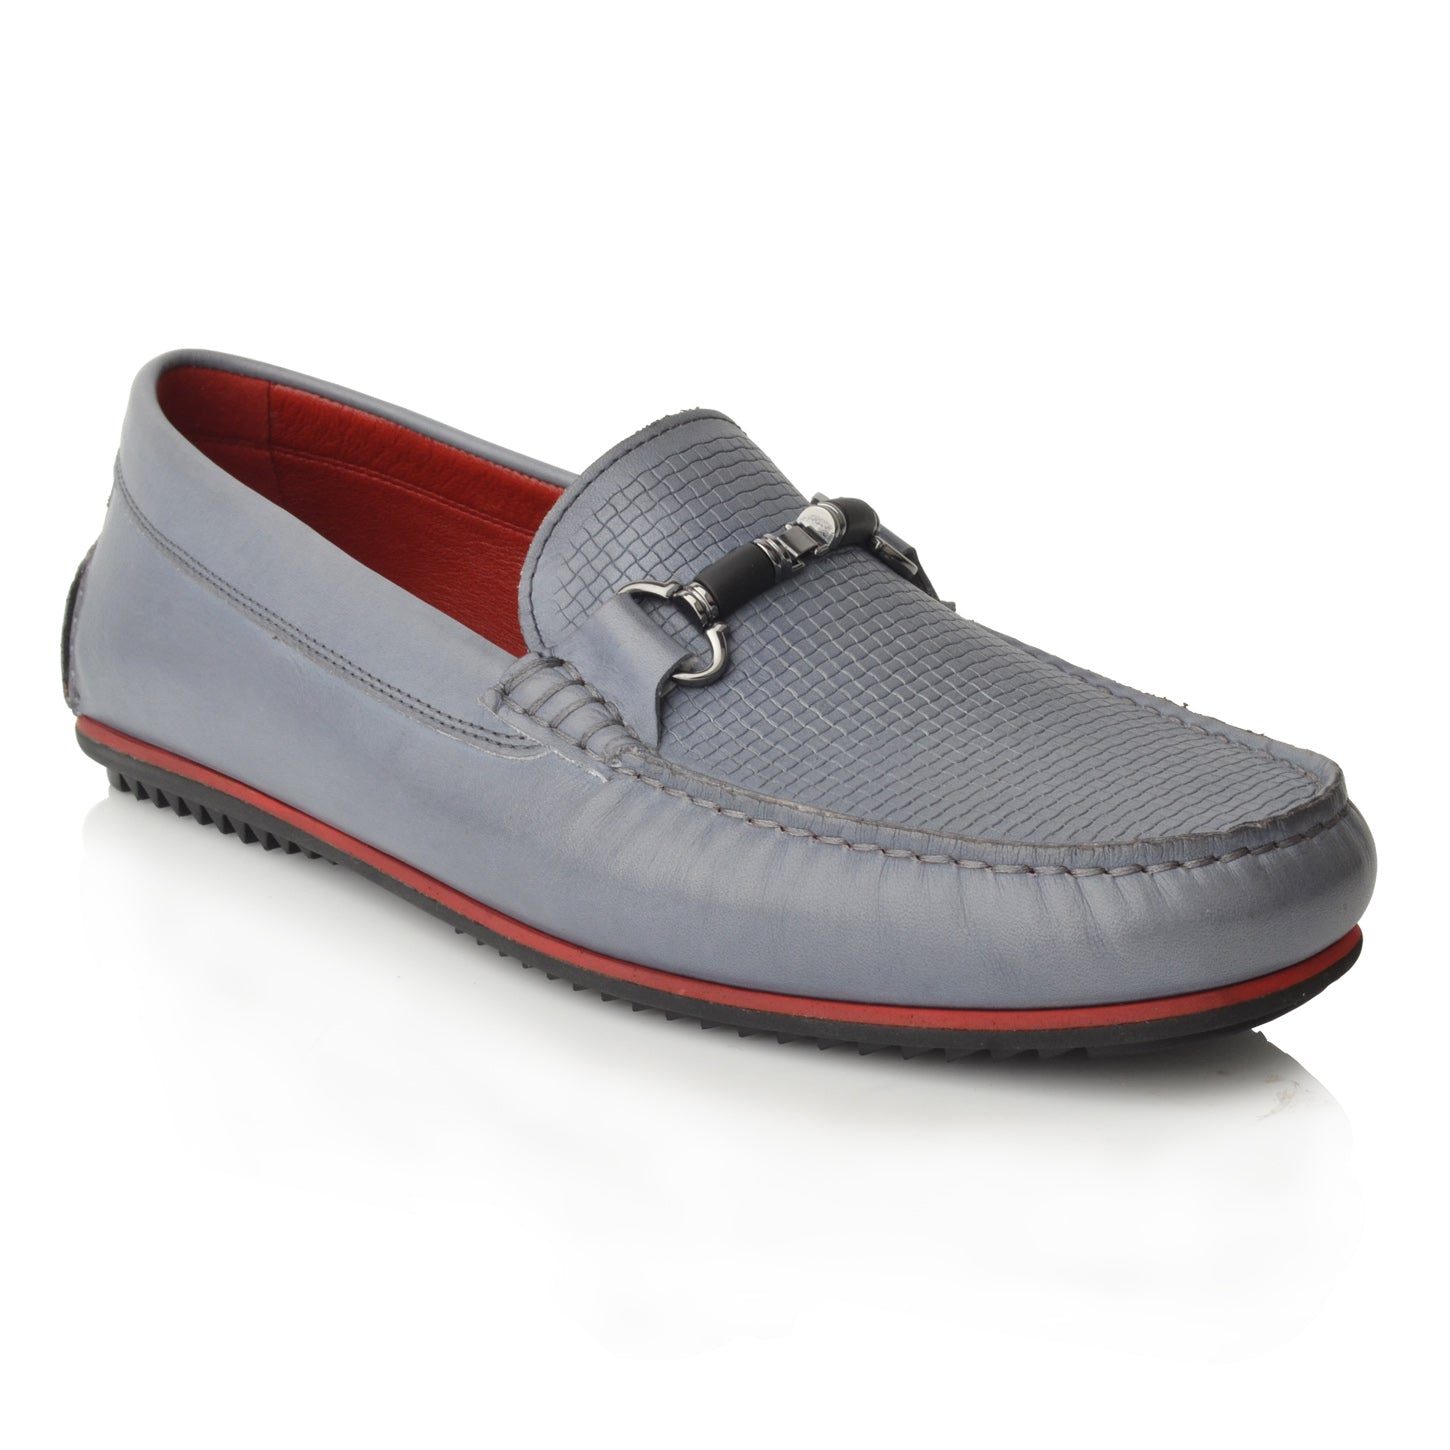 Lm1050 Language Jason  Men's Blue Casual Loafers